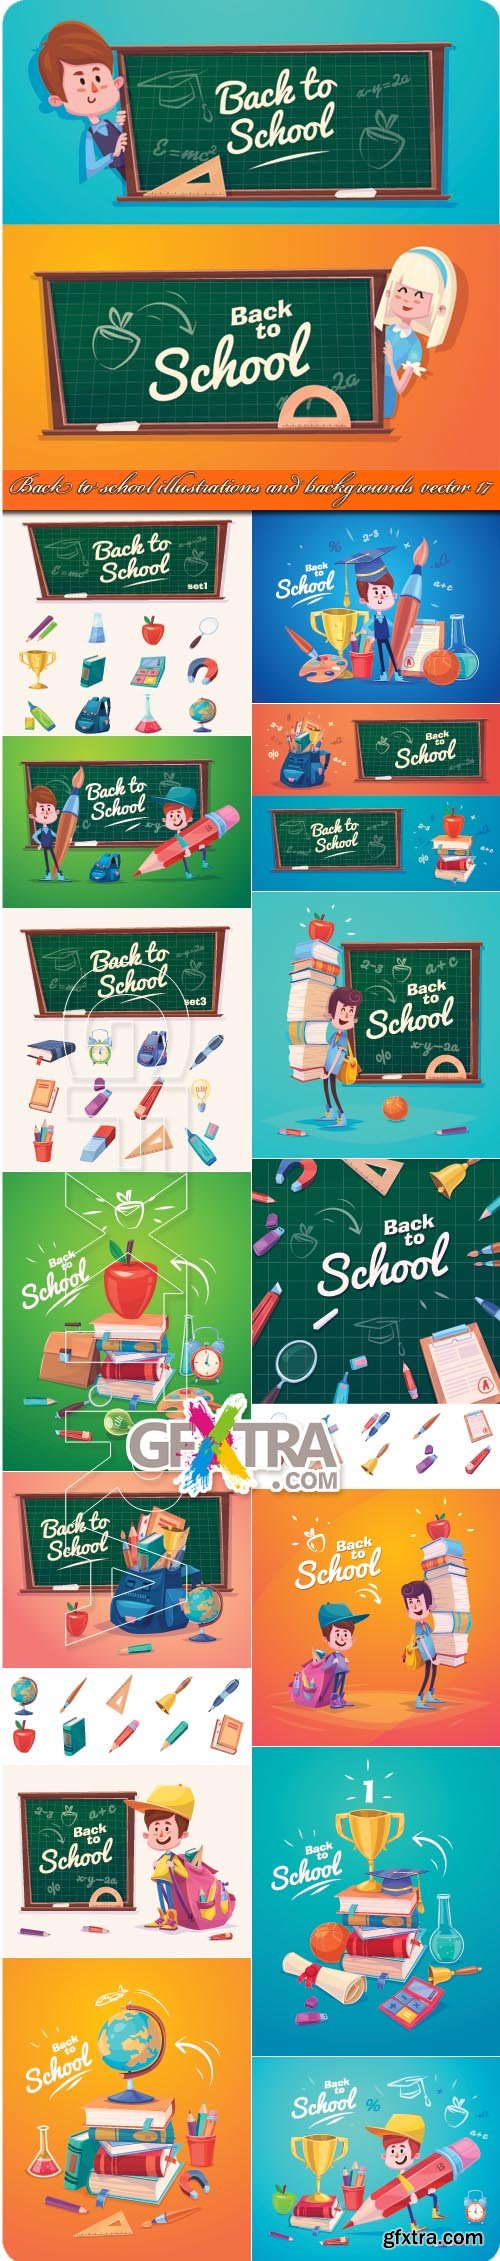 Back to school illustrations and backgrounds vector 17